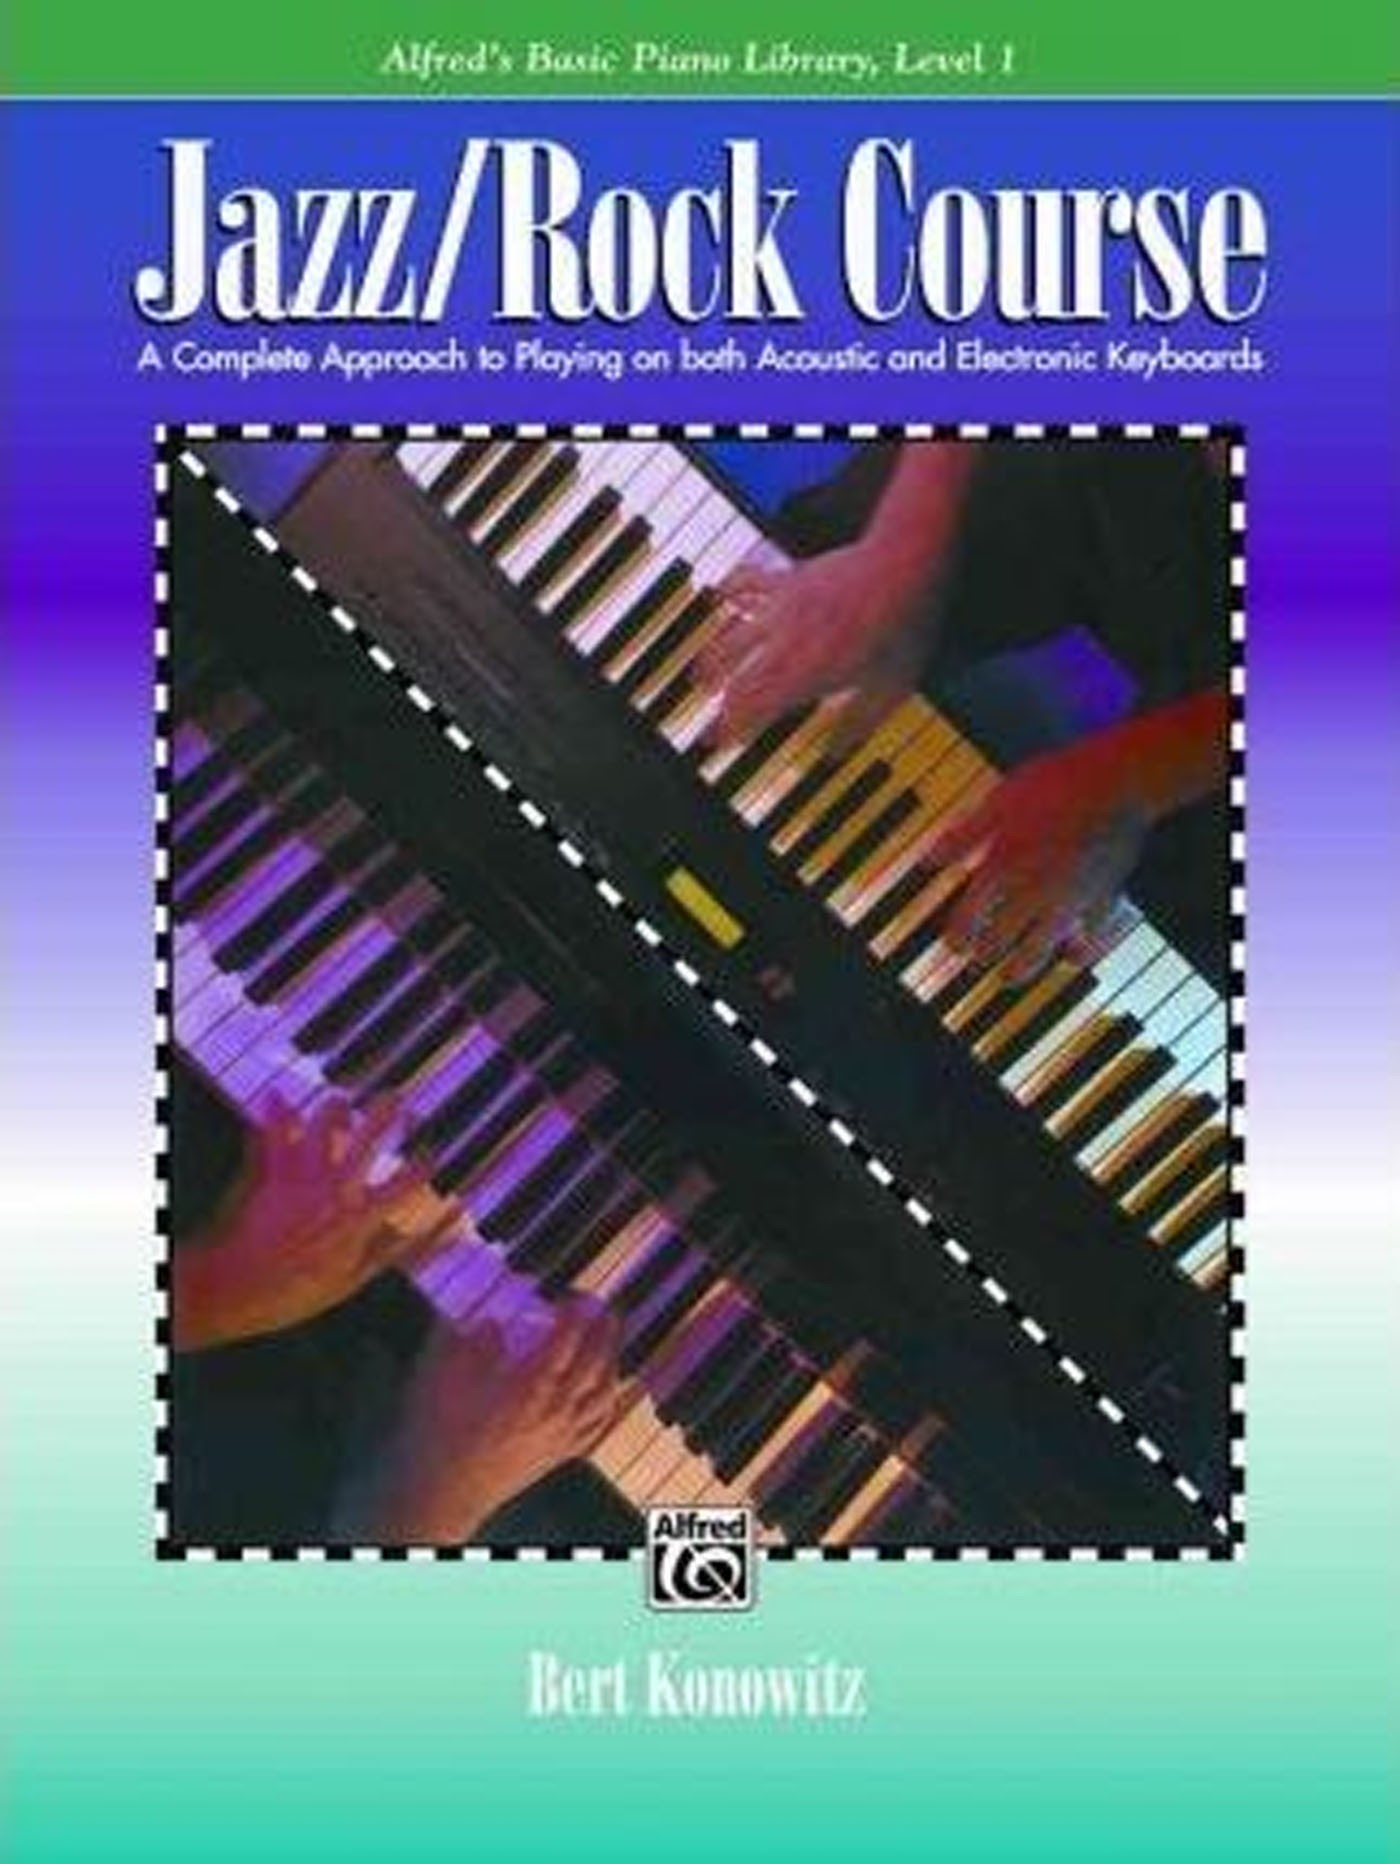 Alfred's Jazz Rock Course Level 1 Tutor Book Konowitz Electronic Keyboard S157